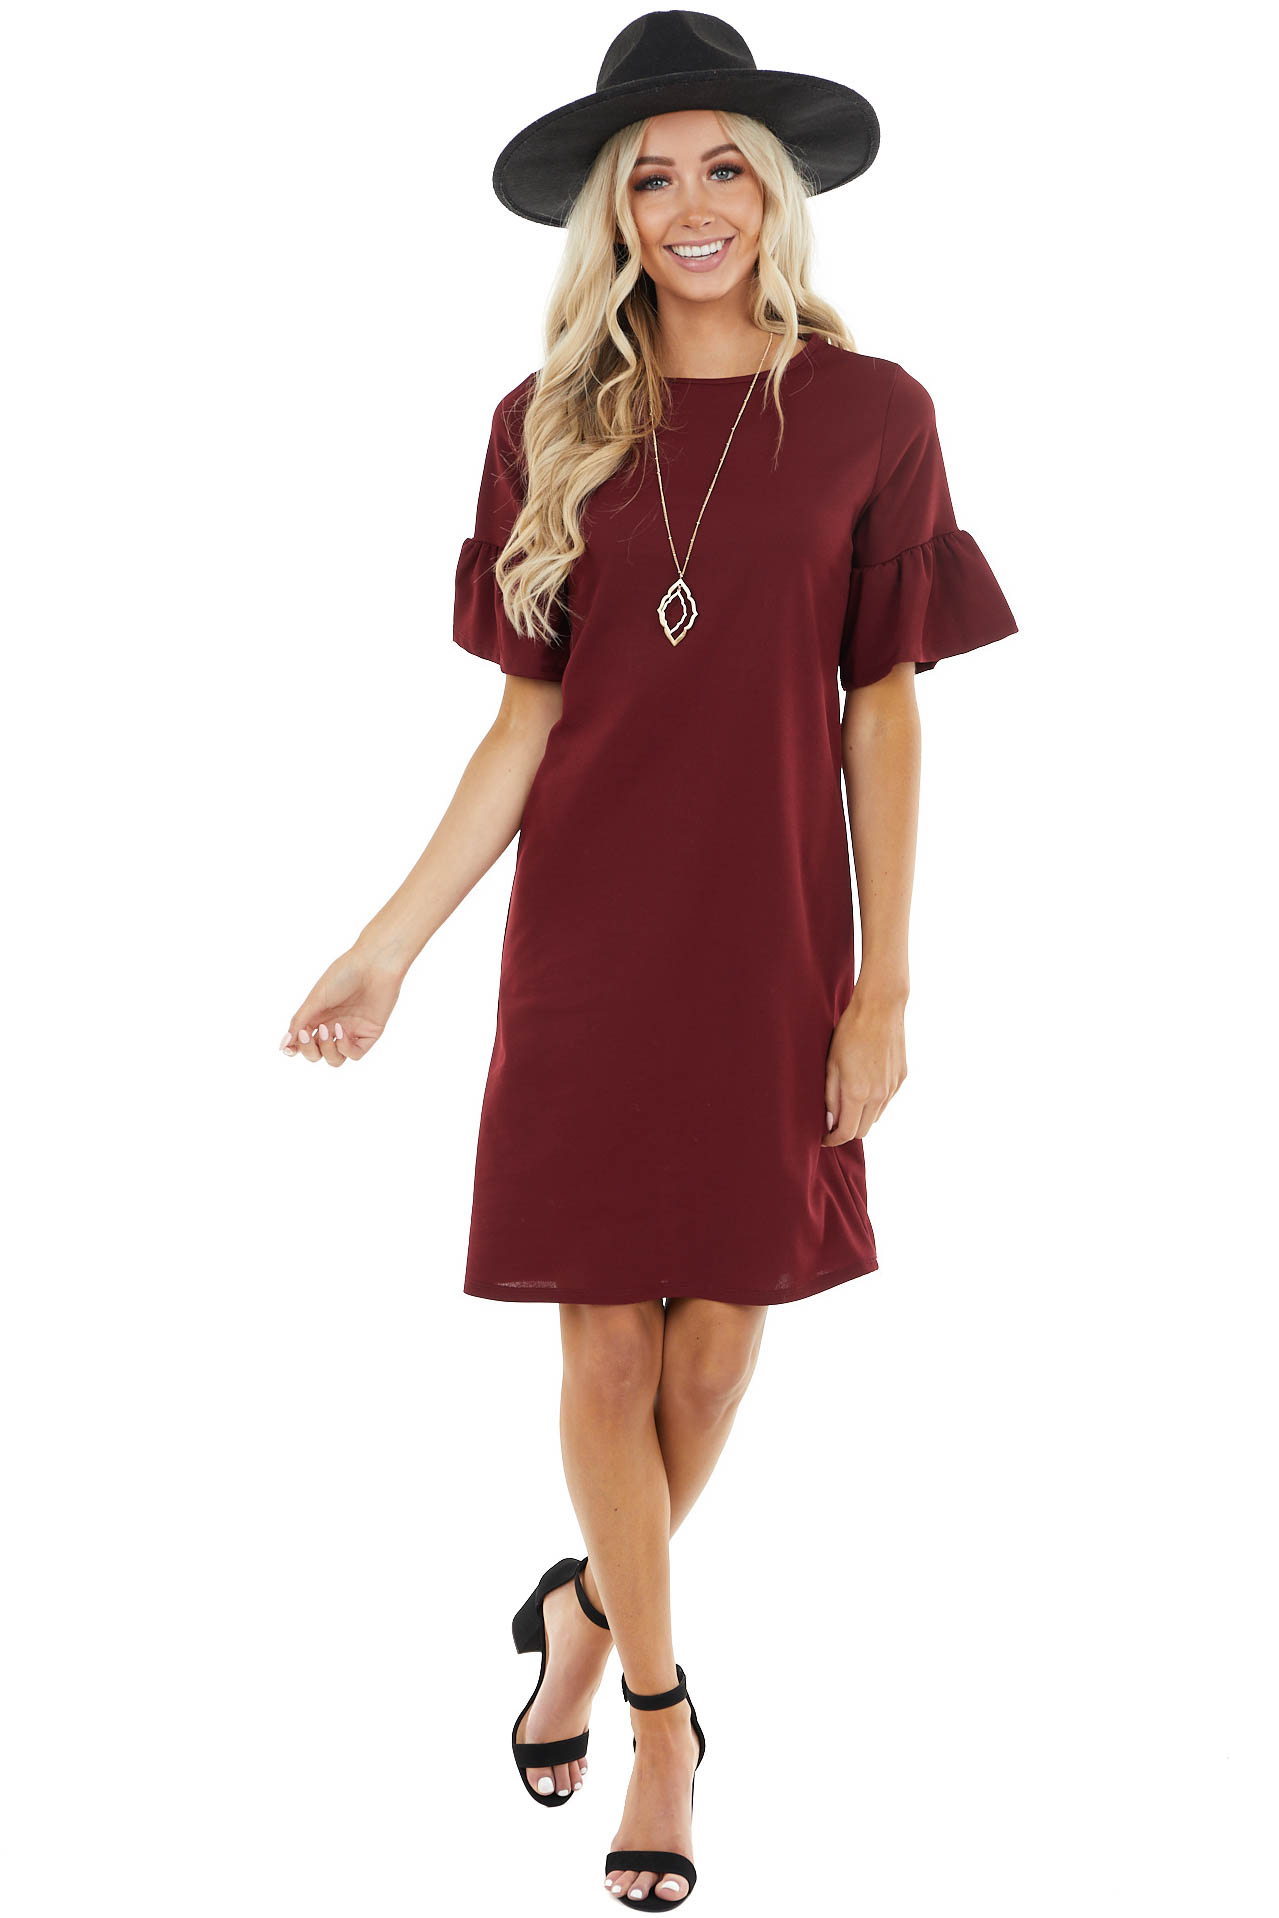 Wine Sheath Dress with Short Ruffle Bell Sleeves